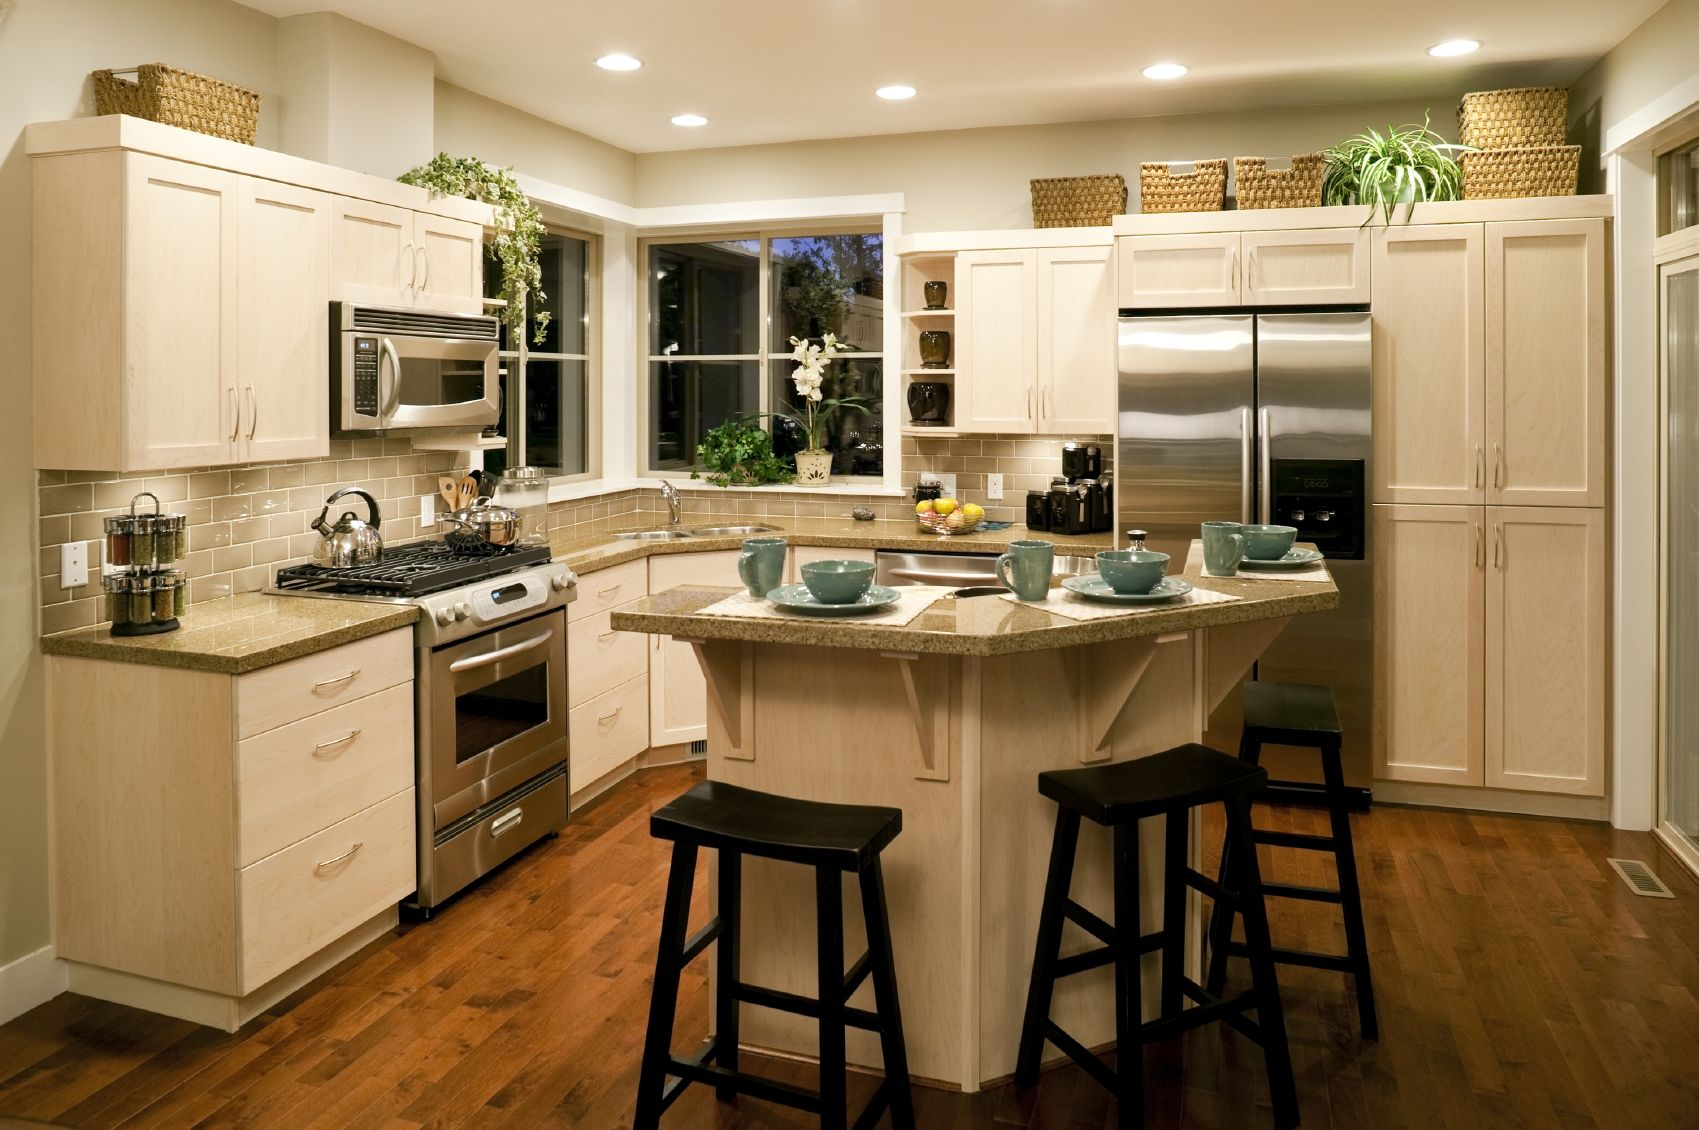 Prime Average Cost Of Small Kitchen Remodel Vegrecipes Home Home Interior And Landscaping Palasignezvosmurscom